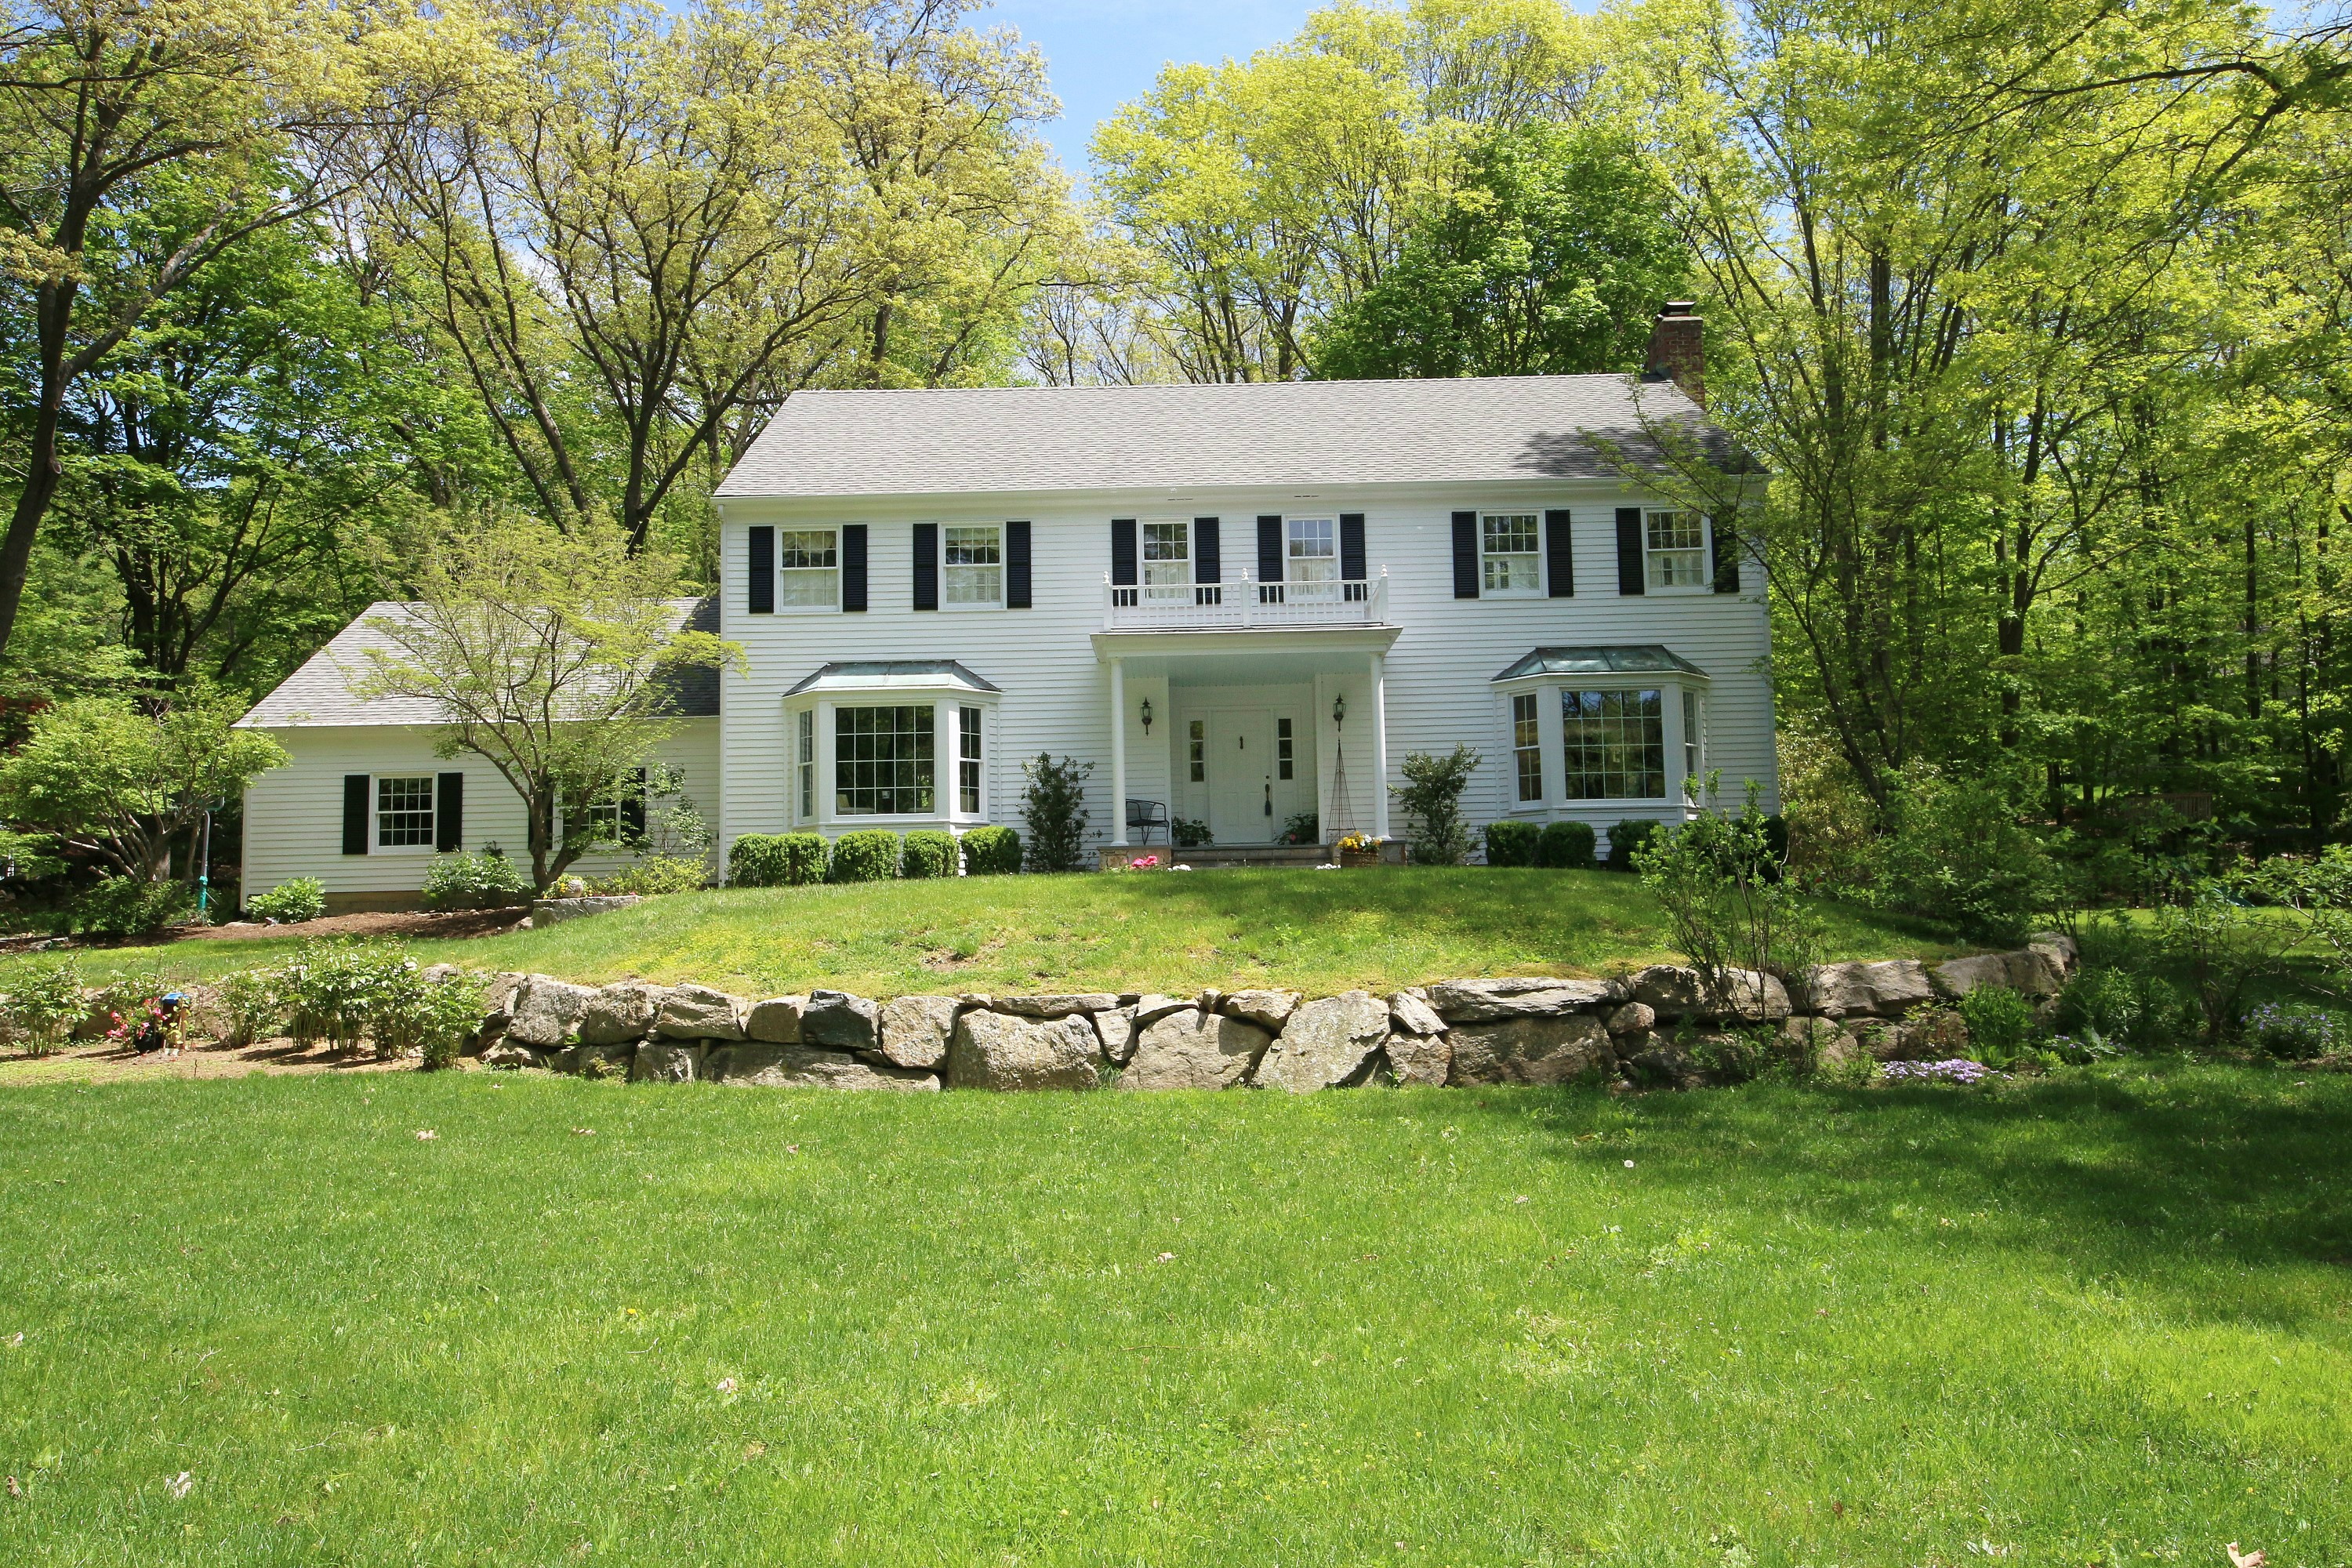 Single Family Home for Sale at Great Neighborhood, Great House, Great Lot 133 Indian Cave Road Ridgefield, Connecticut, 06877 United States